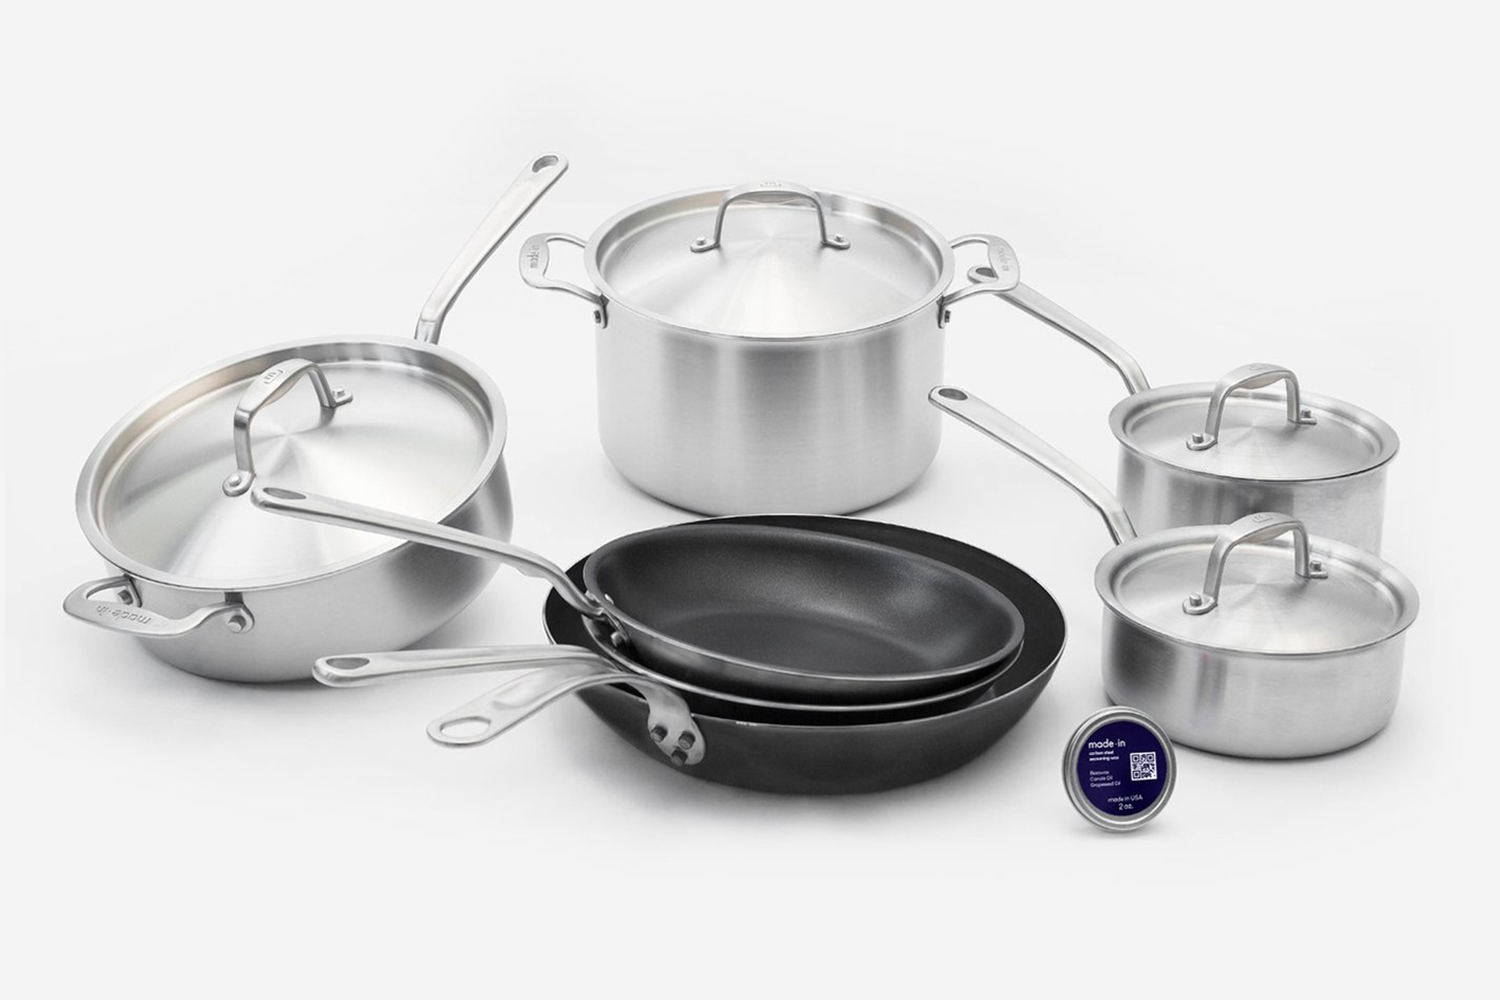 The Sous Chef Cookware Set from Made In, which includes stainless steel, blue carbon steel and nonstick pots and pans